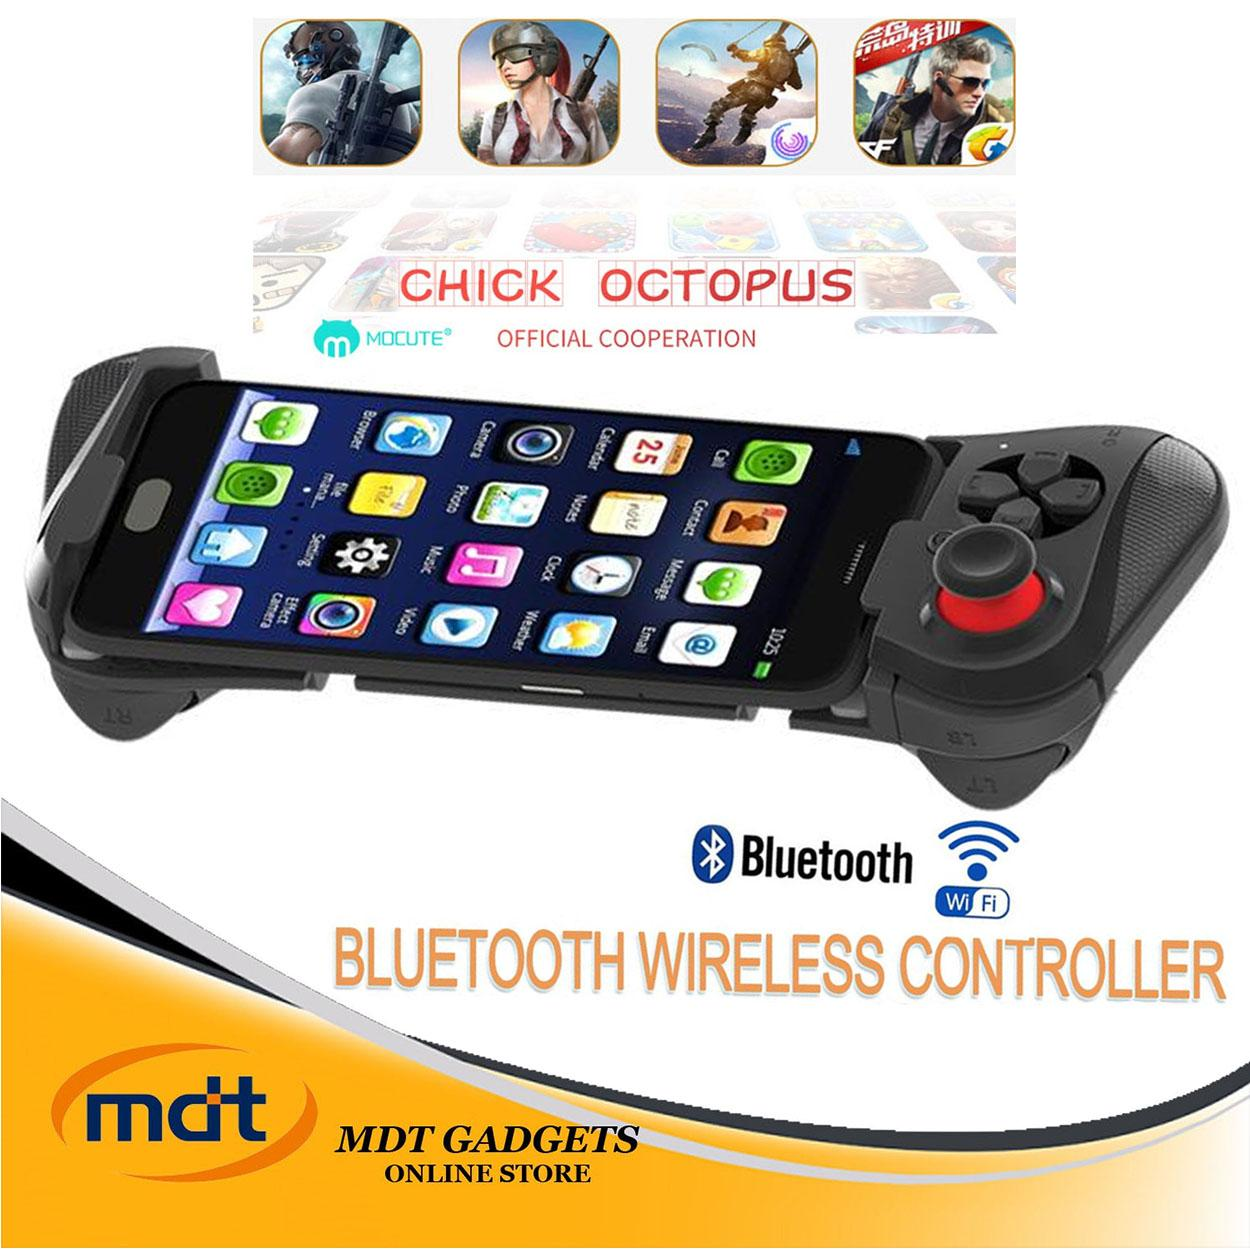 MOCUTE 058 Game Pad wireless Bluetooth Controller Joystick Remote Control Gamepad for Phone VR PC TV